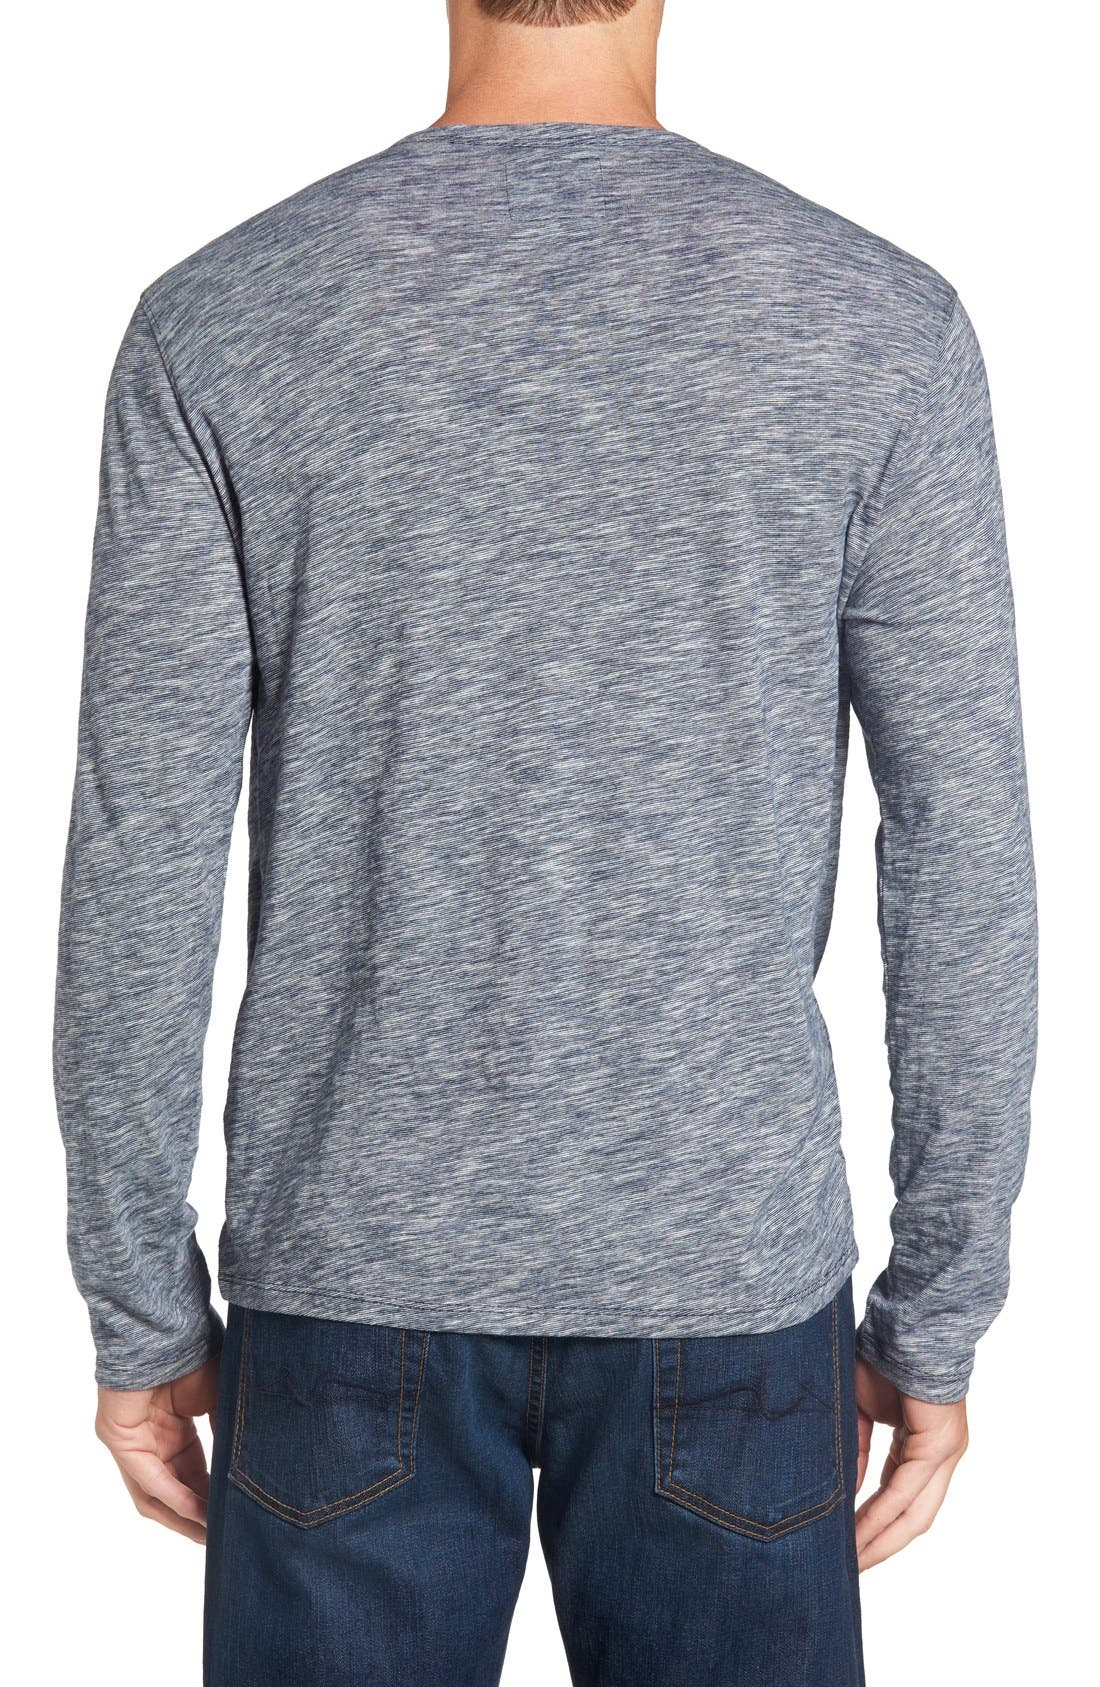 Alternate Image 2  - Bonobos Slim Fit Cotton Henley